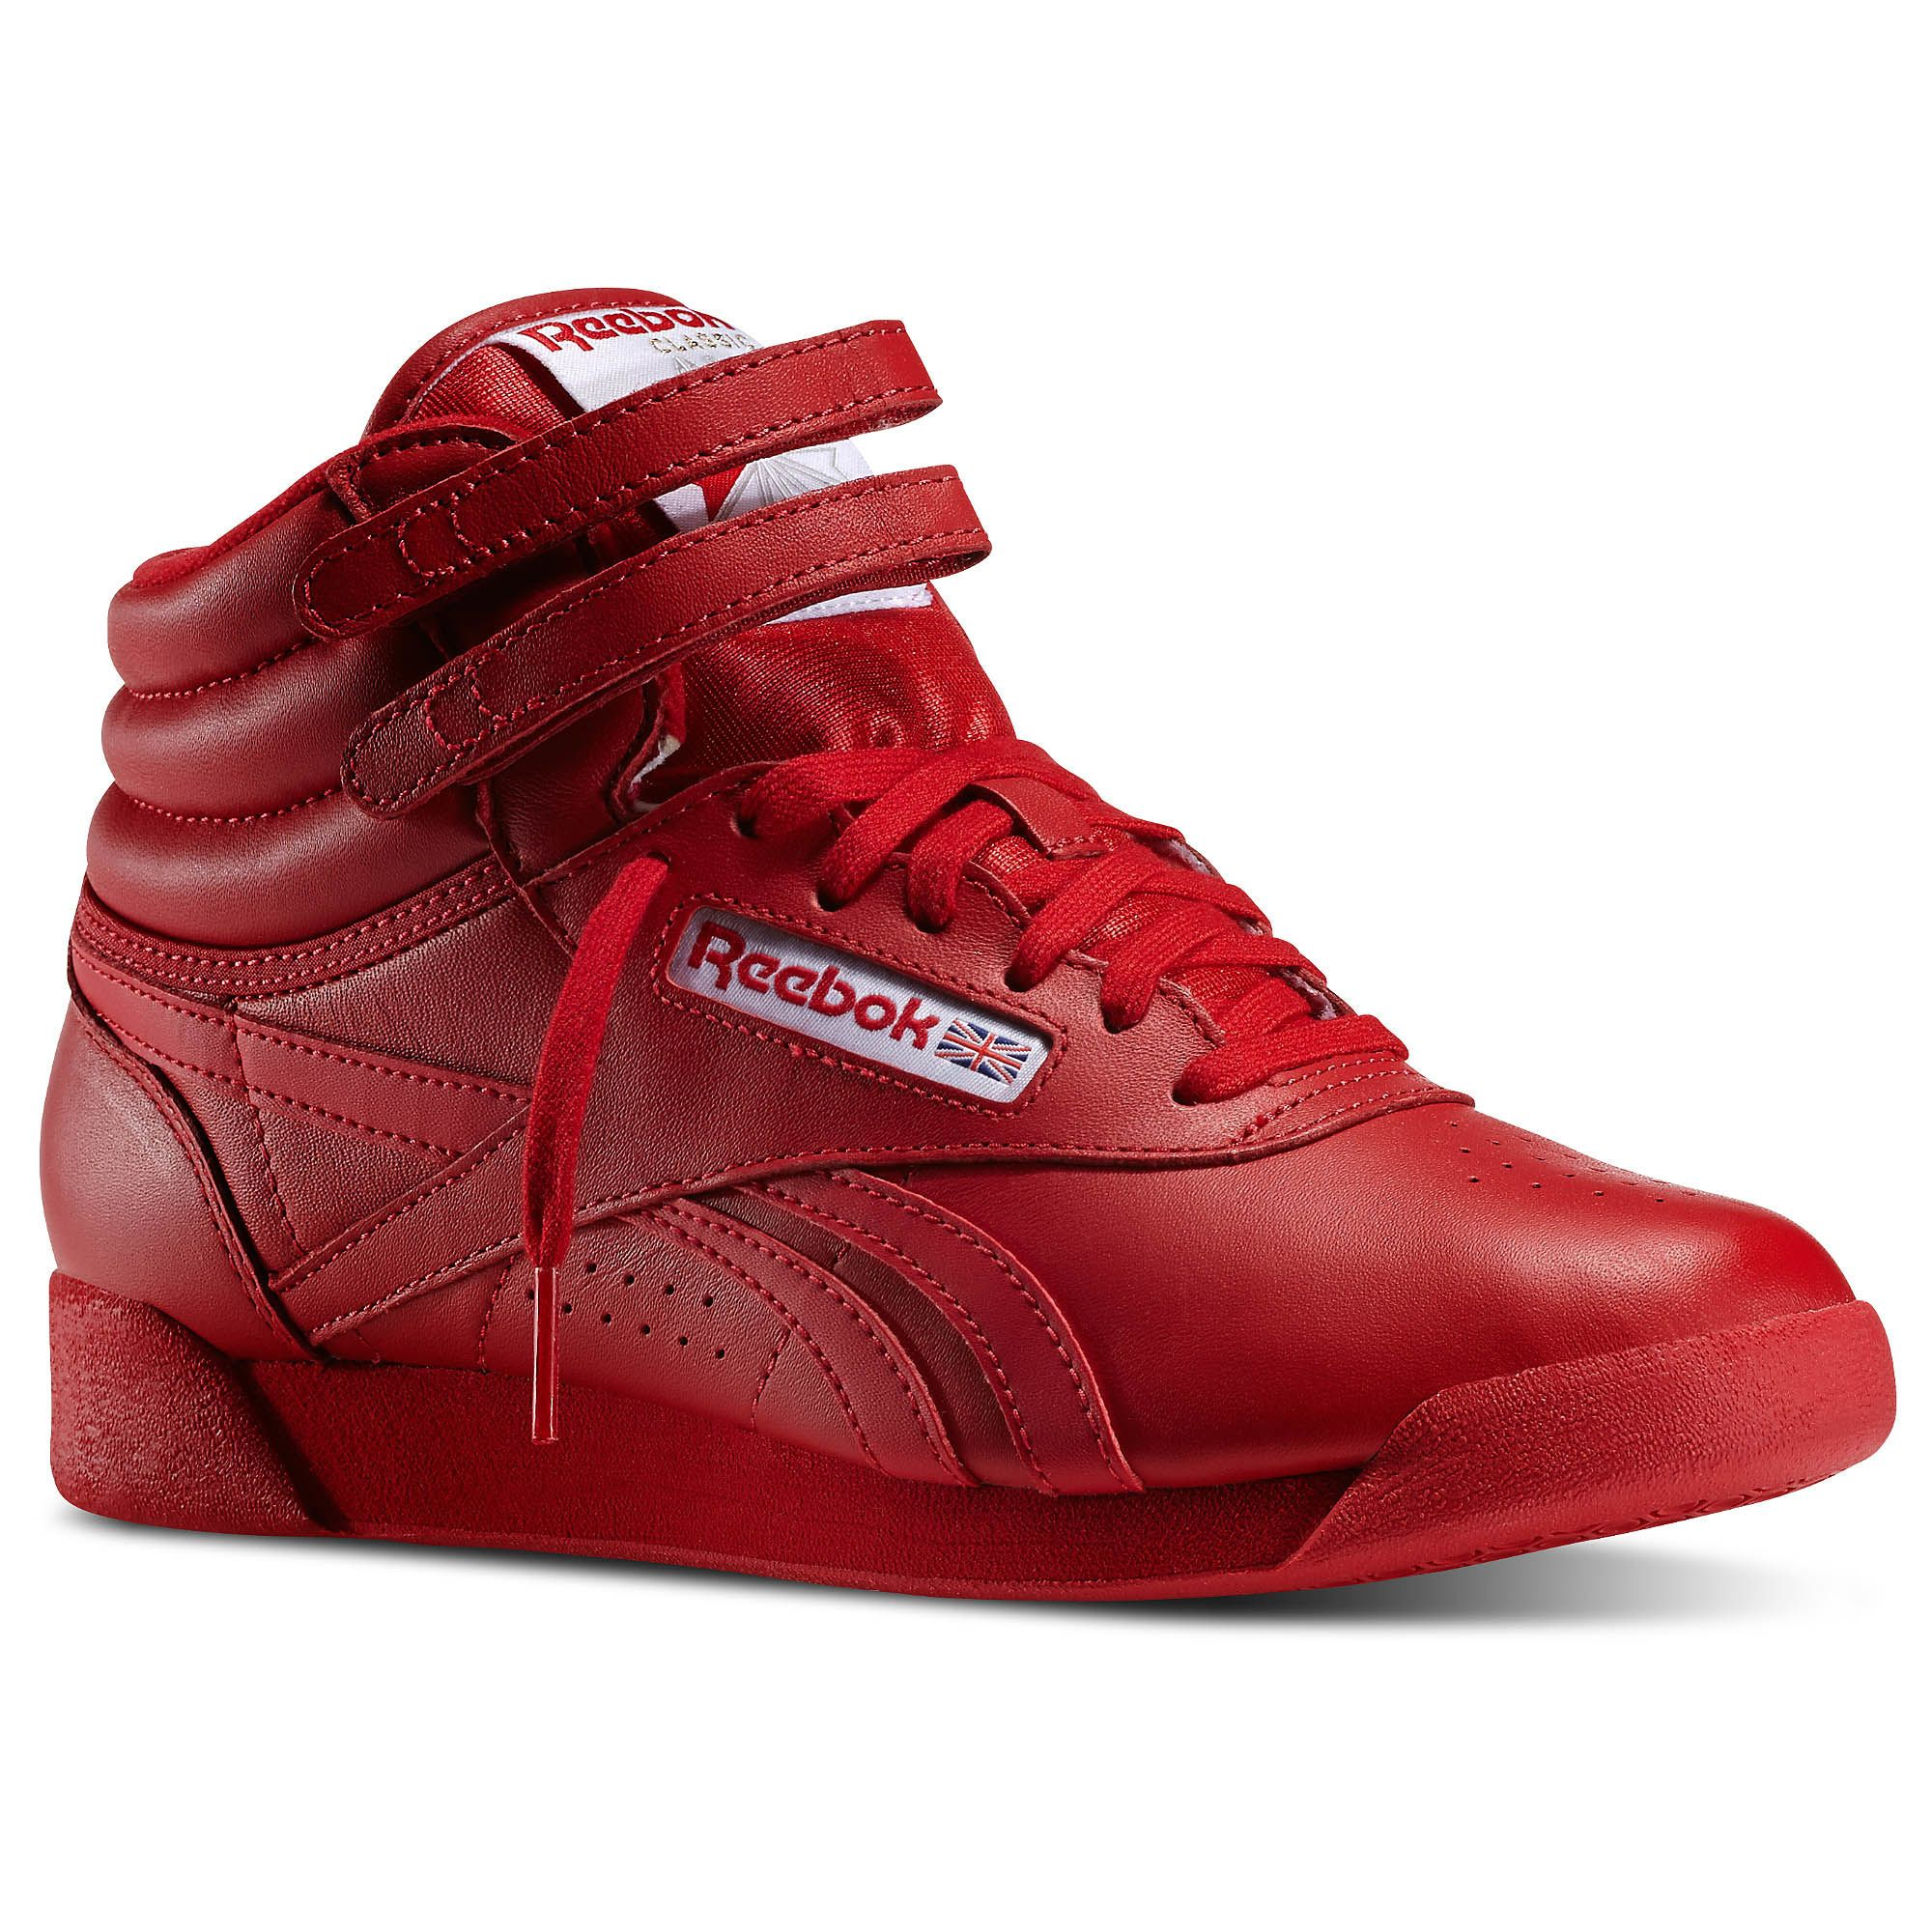 Shop for Freestyle Hi Spirit - Red at reebok.com. See all the styles and  colors of Freestyle Hi Spirit - Red at the official Reebok US online store. c10de34d4